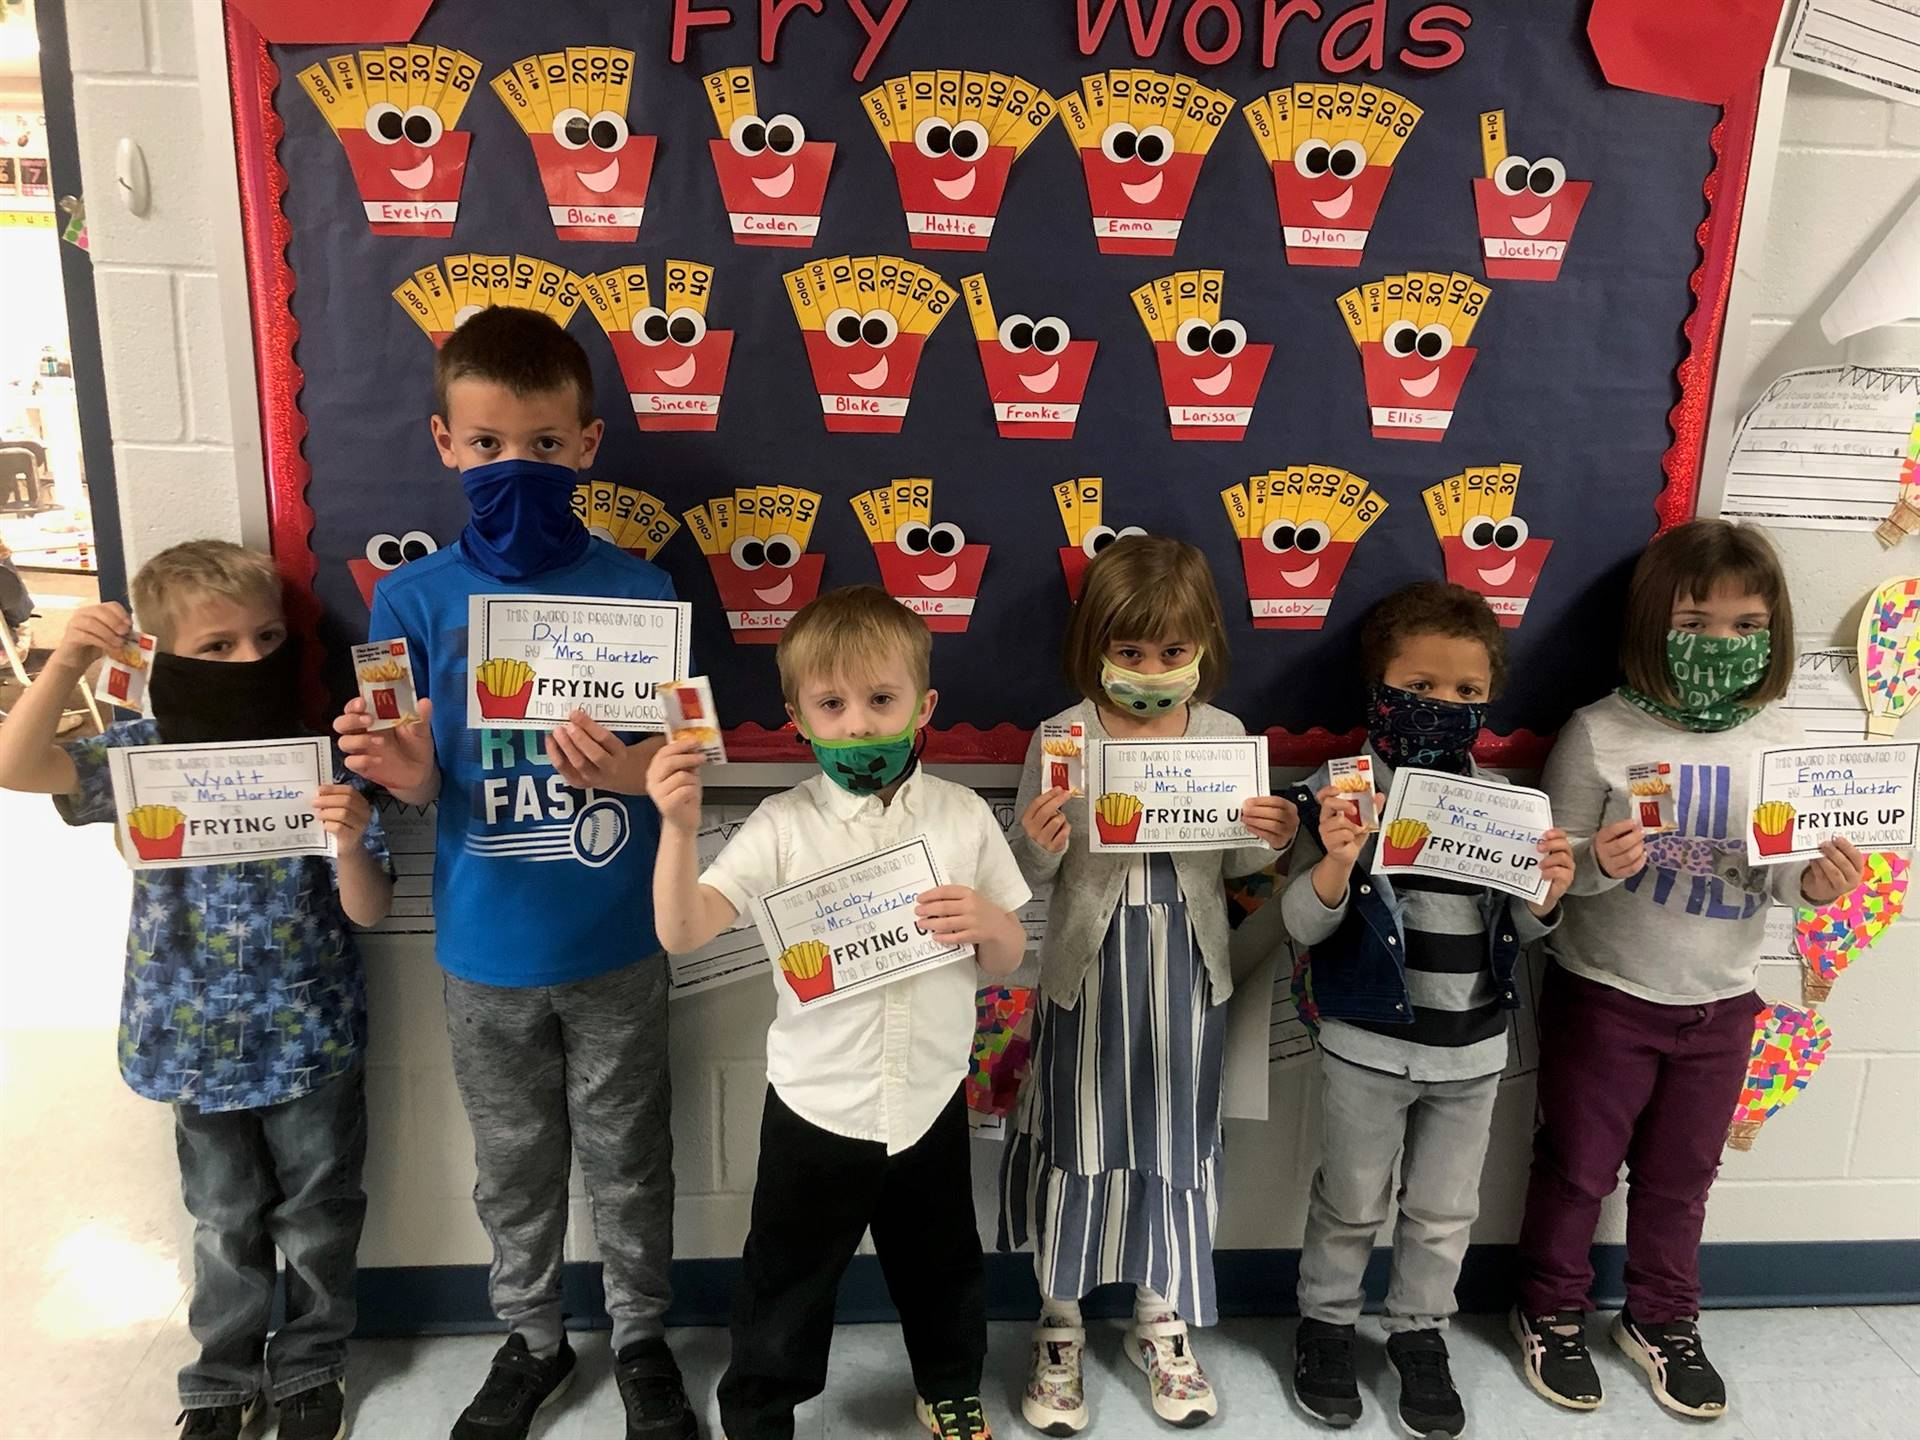 These kindergarteners mastered their fry words & got free McDonald fries!